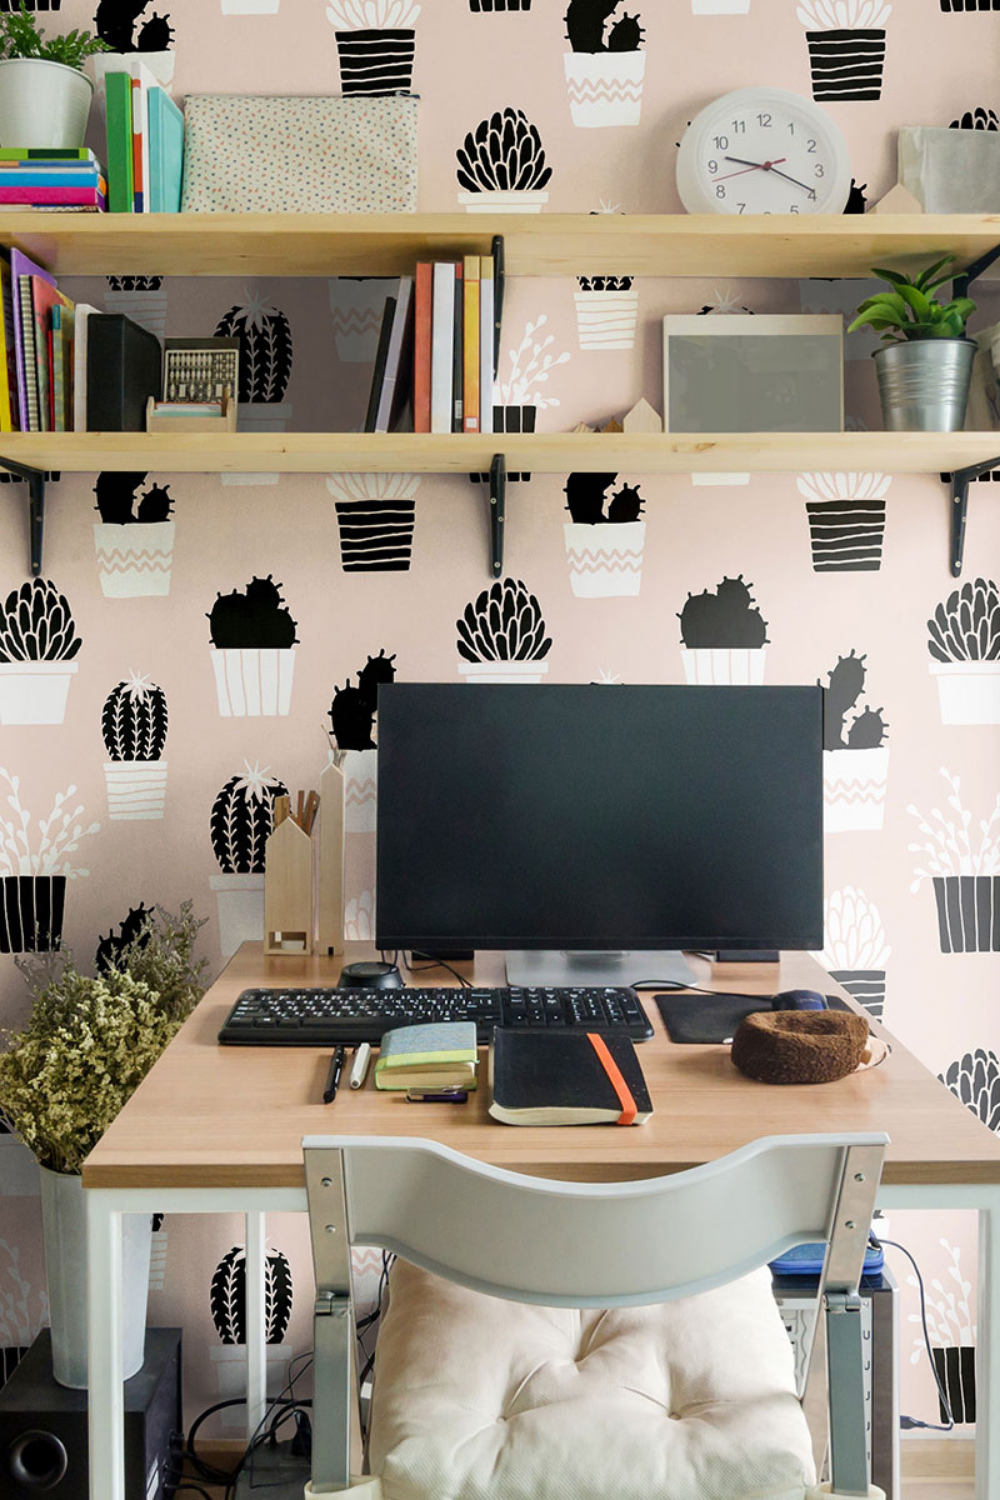 Peach And Black Tropical Peel And Stick Removable Wallpaper 4612 Simple Room Removable Wallpaper Home Office Furniture